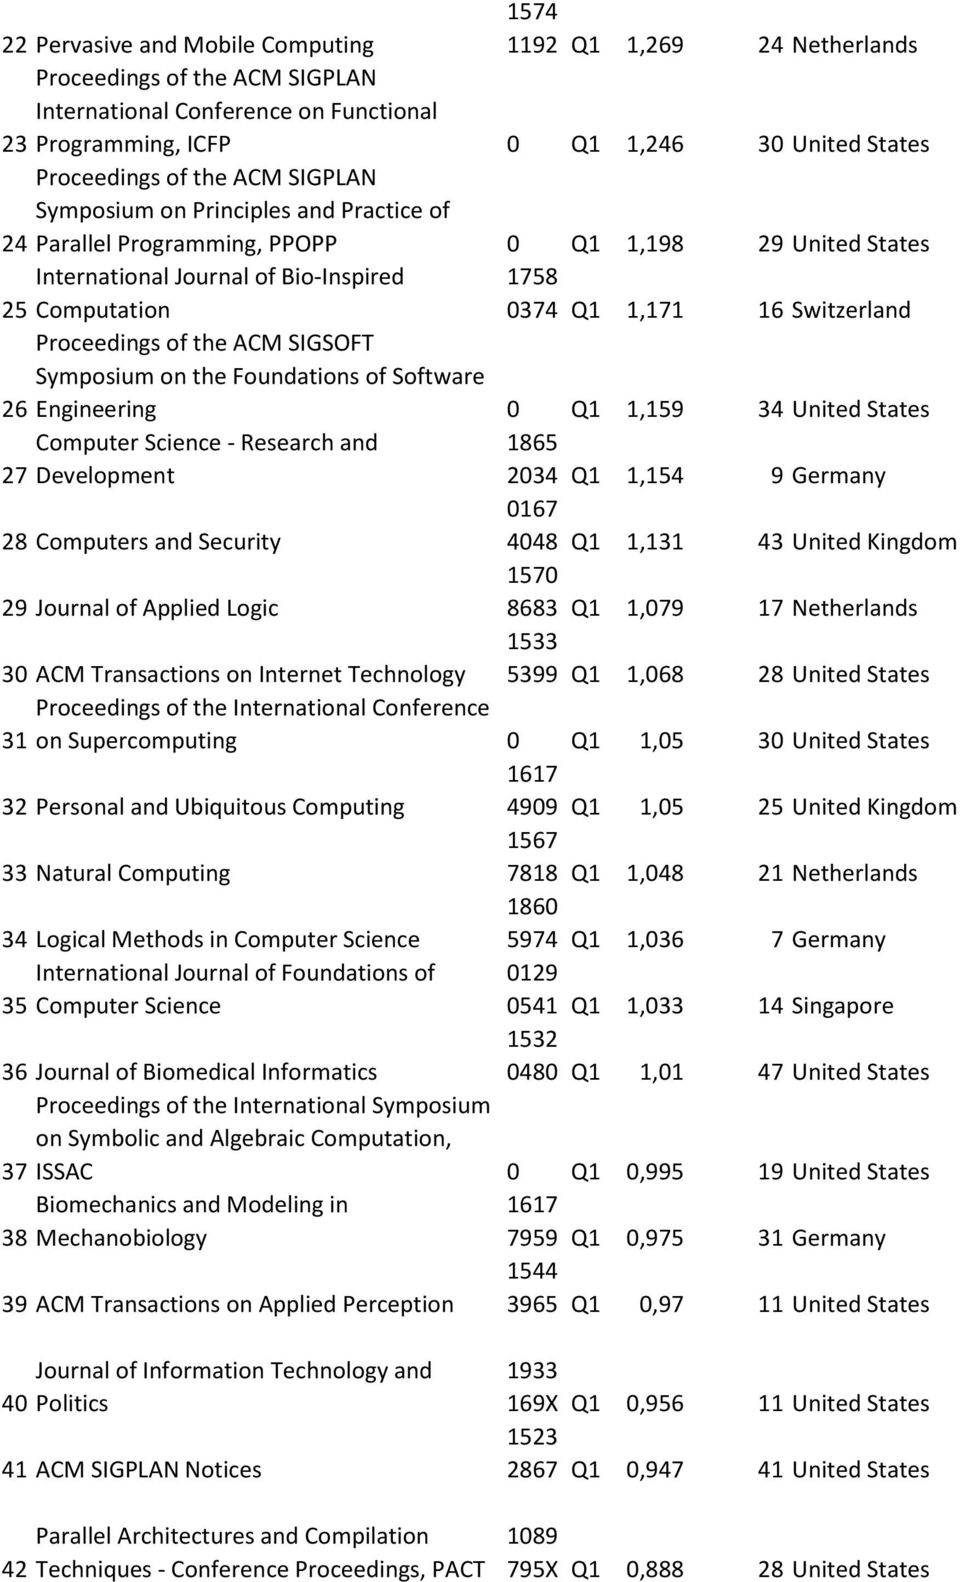 Switzerland Proceedings of the ACM SIGSOFT Symposium on the Foundations of Software 26 Engineering 0 Q1 1,159 34 United States Computer Science - Research and 1865 27 Development 2034 Q1 1,154 9